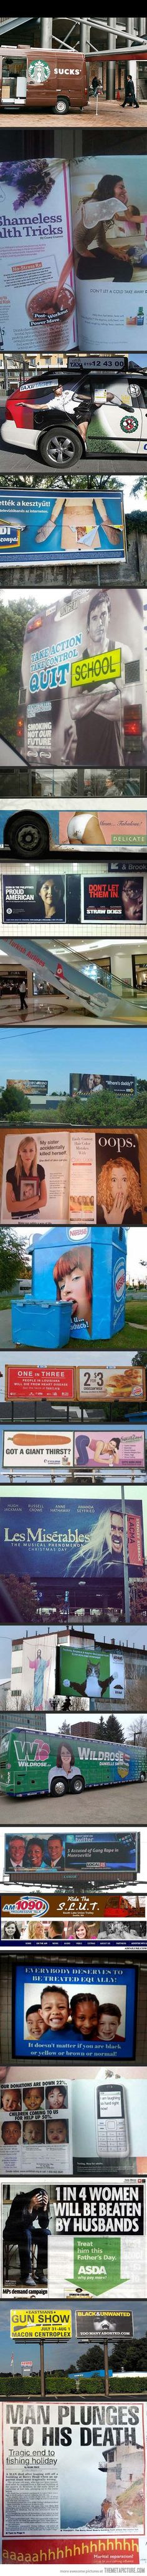 23 Most Unfortunate Advertising Placements…